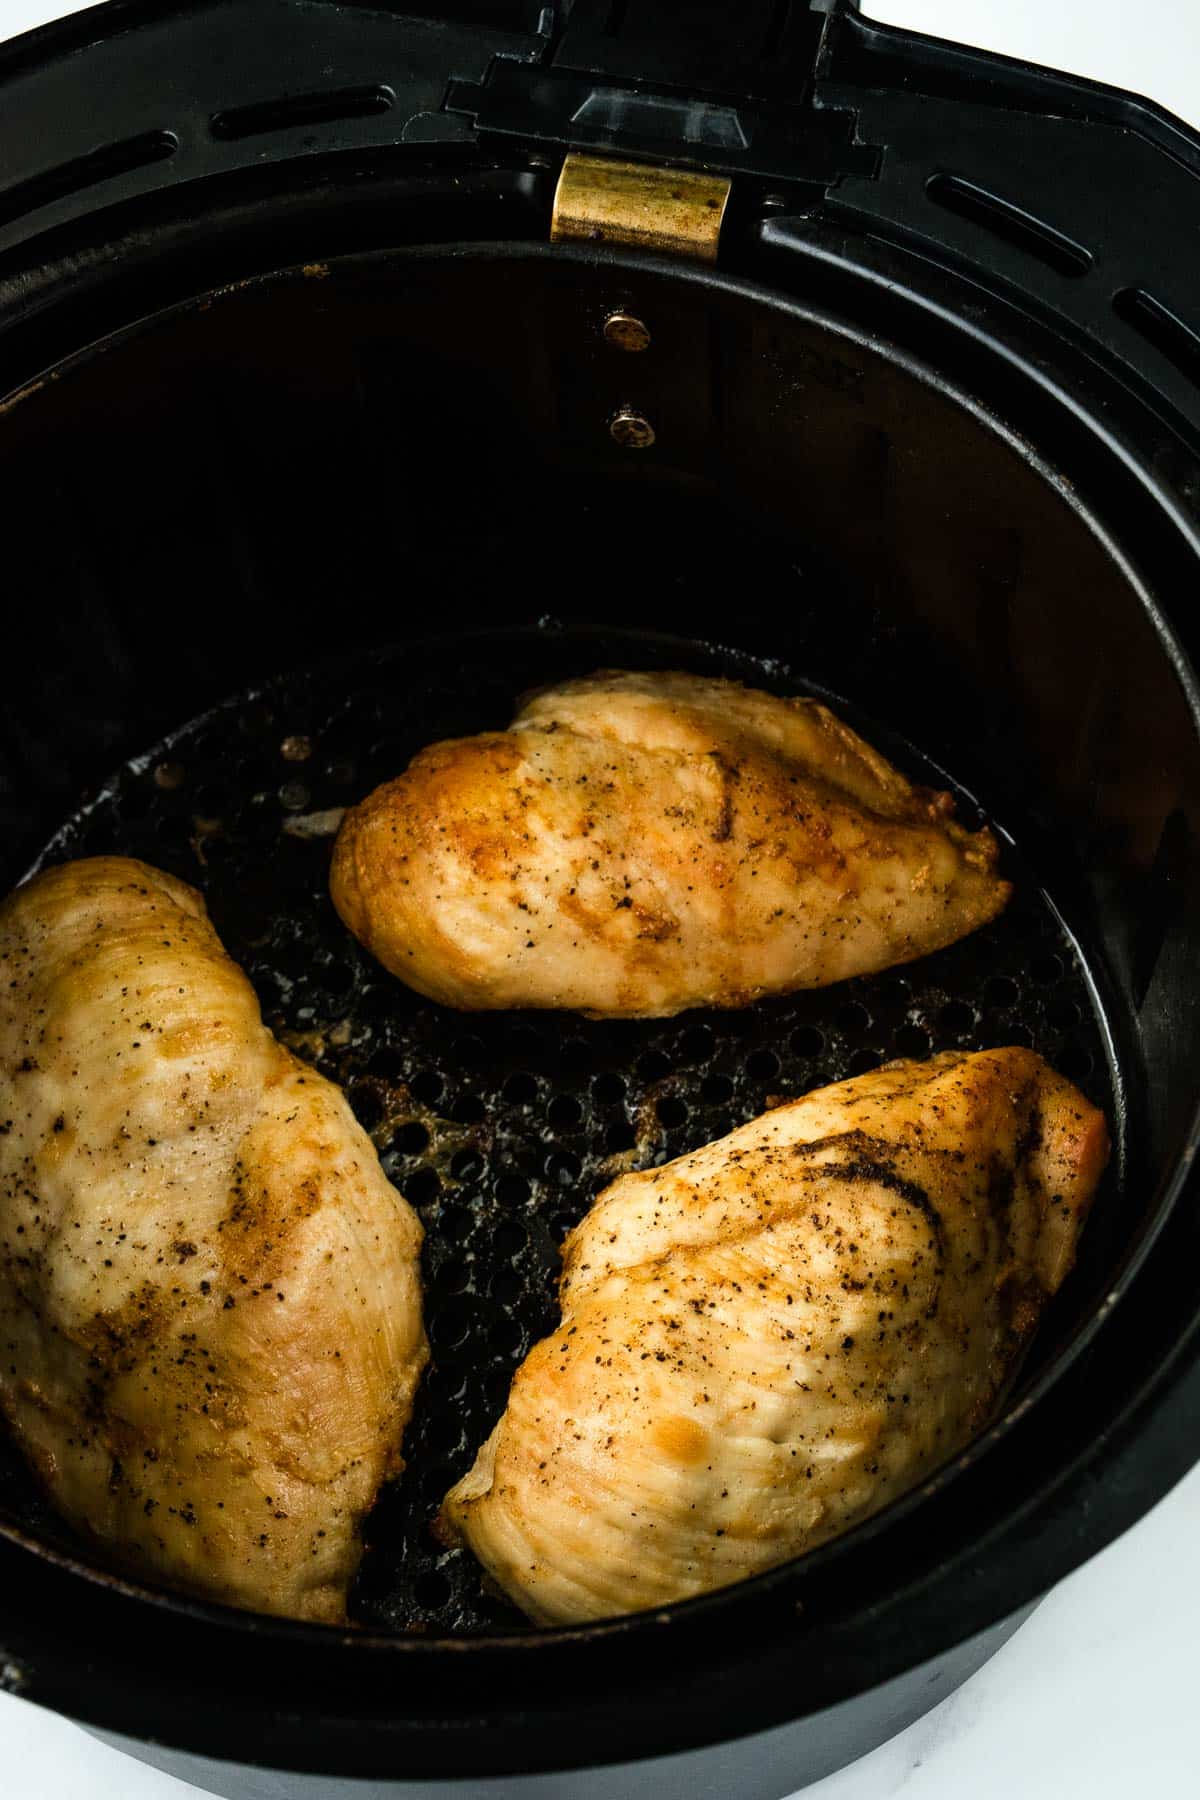 Chicken breasts in an air fryer.